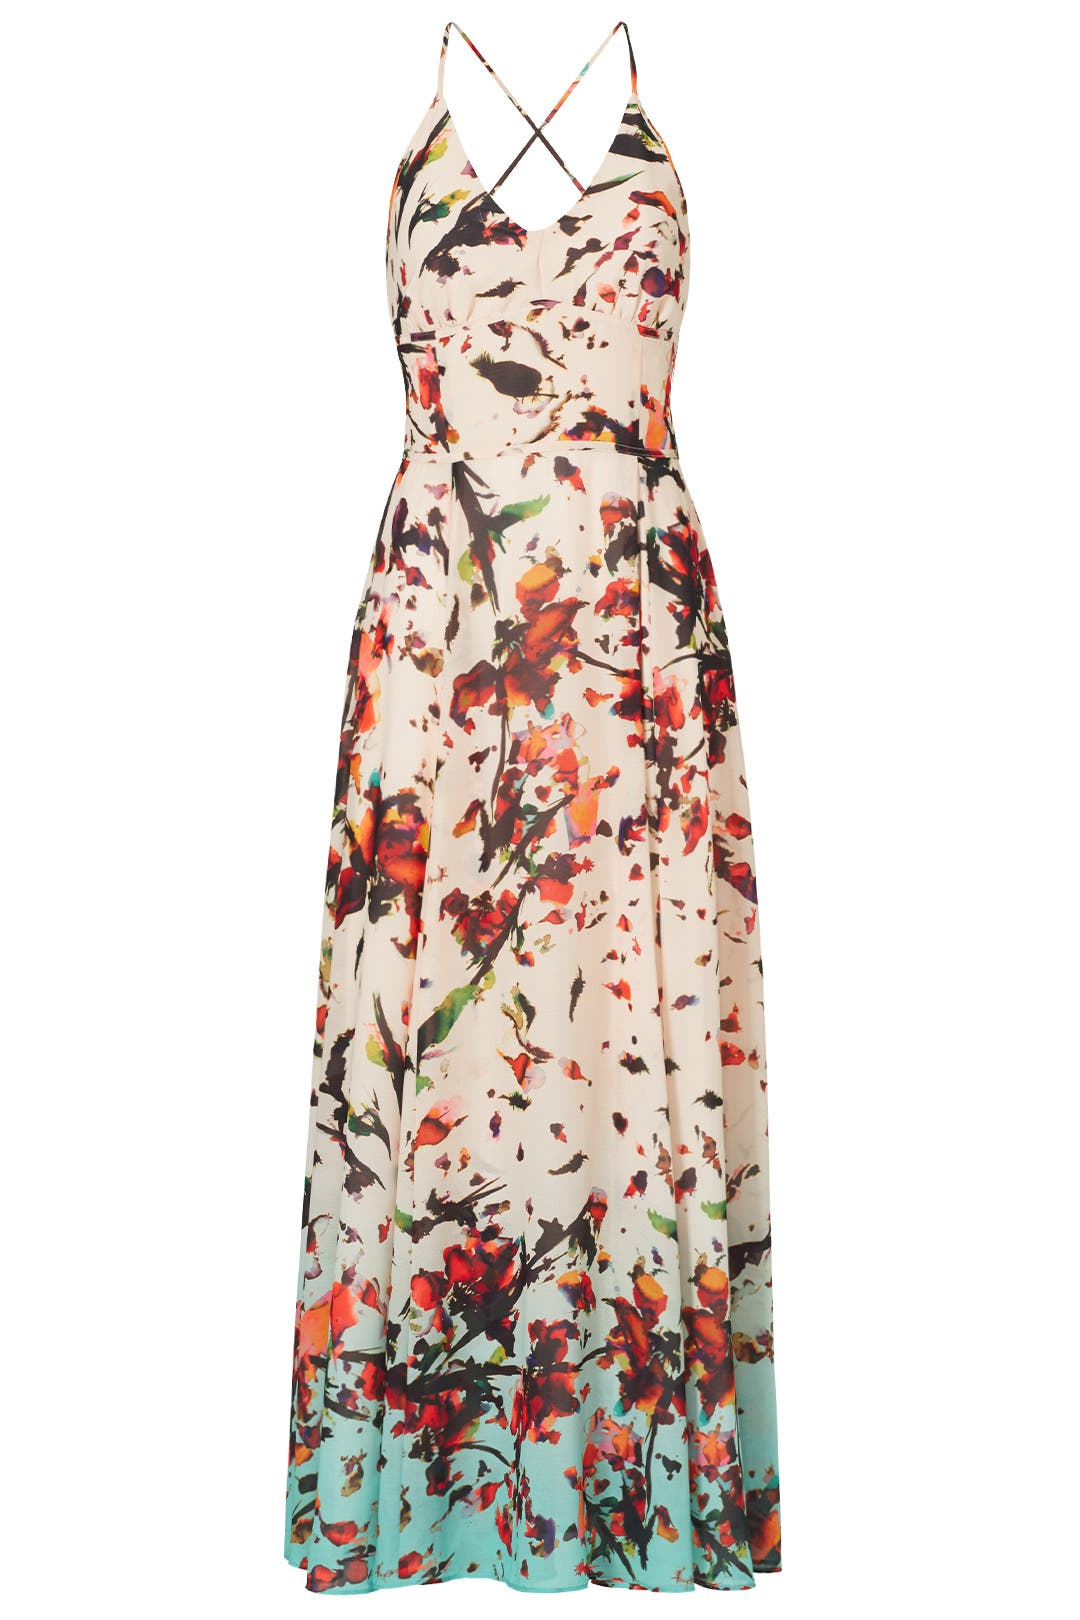 e198ffc4117d Crinkle Chiffon Floral Dress by Rachel Rachel Roy for $30 | Rent the Runway